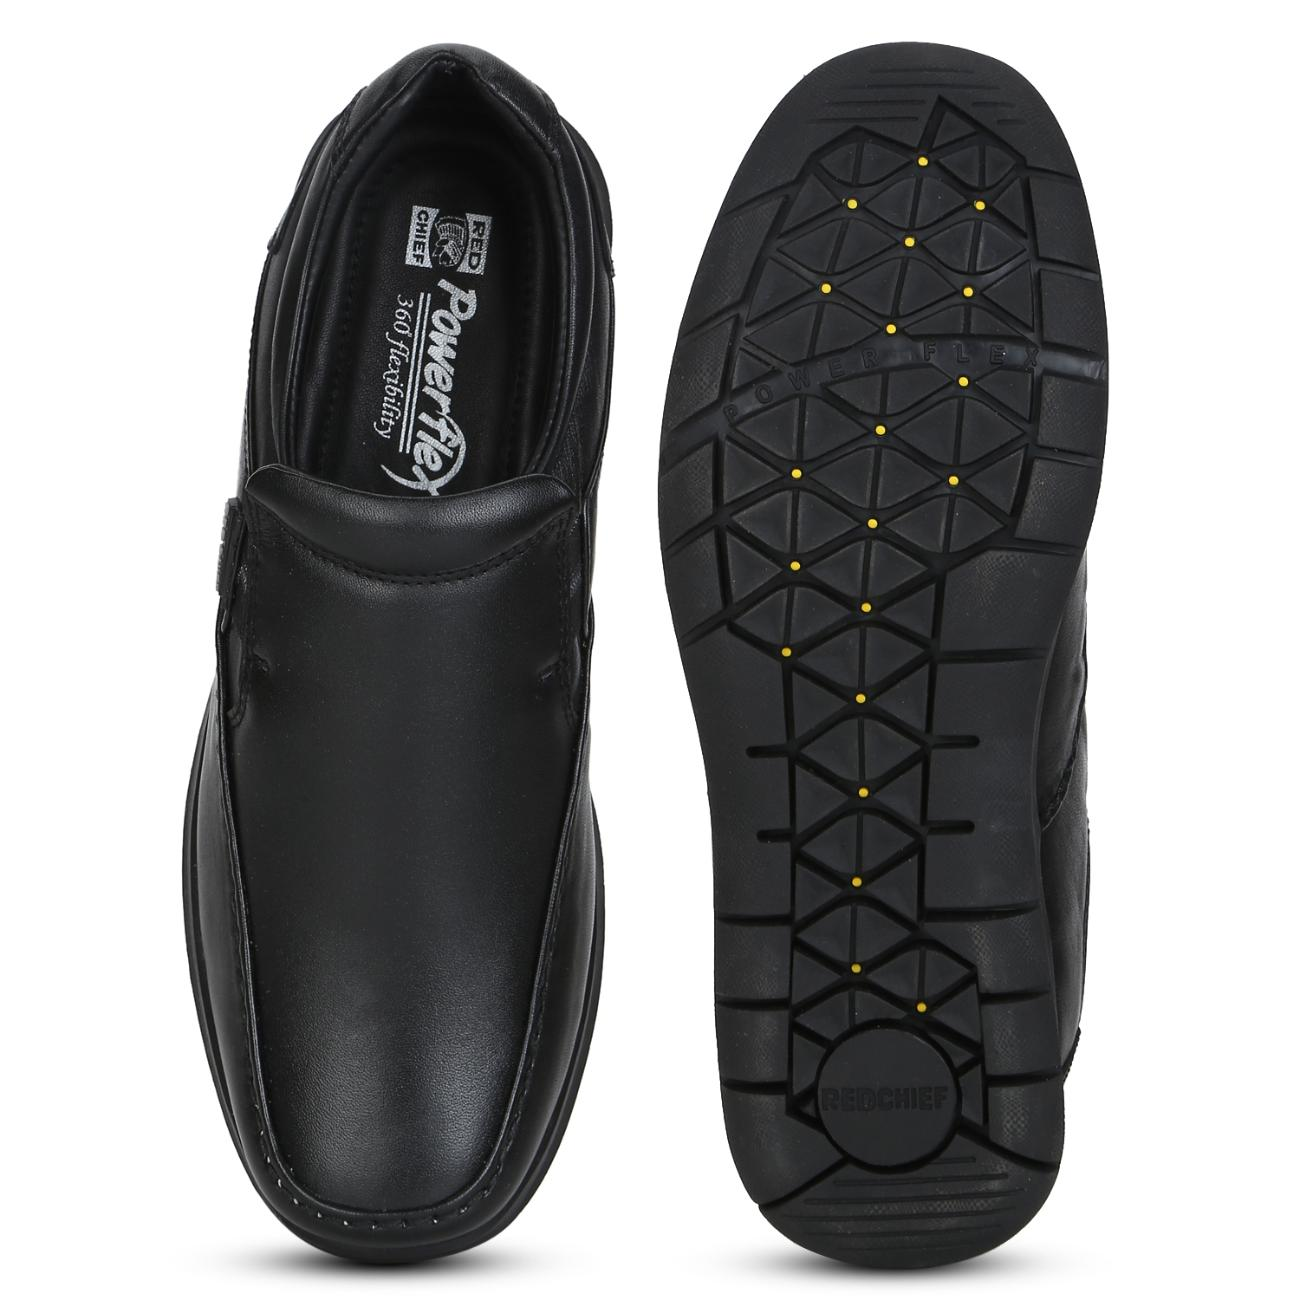 black leather slip-on formal shoes from behind